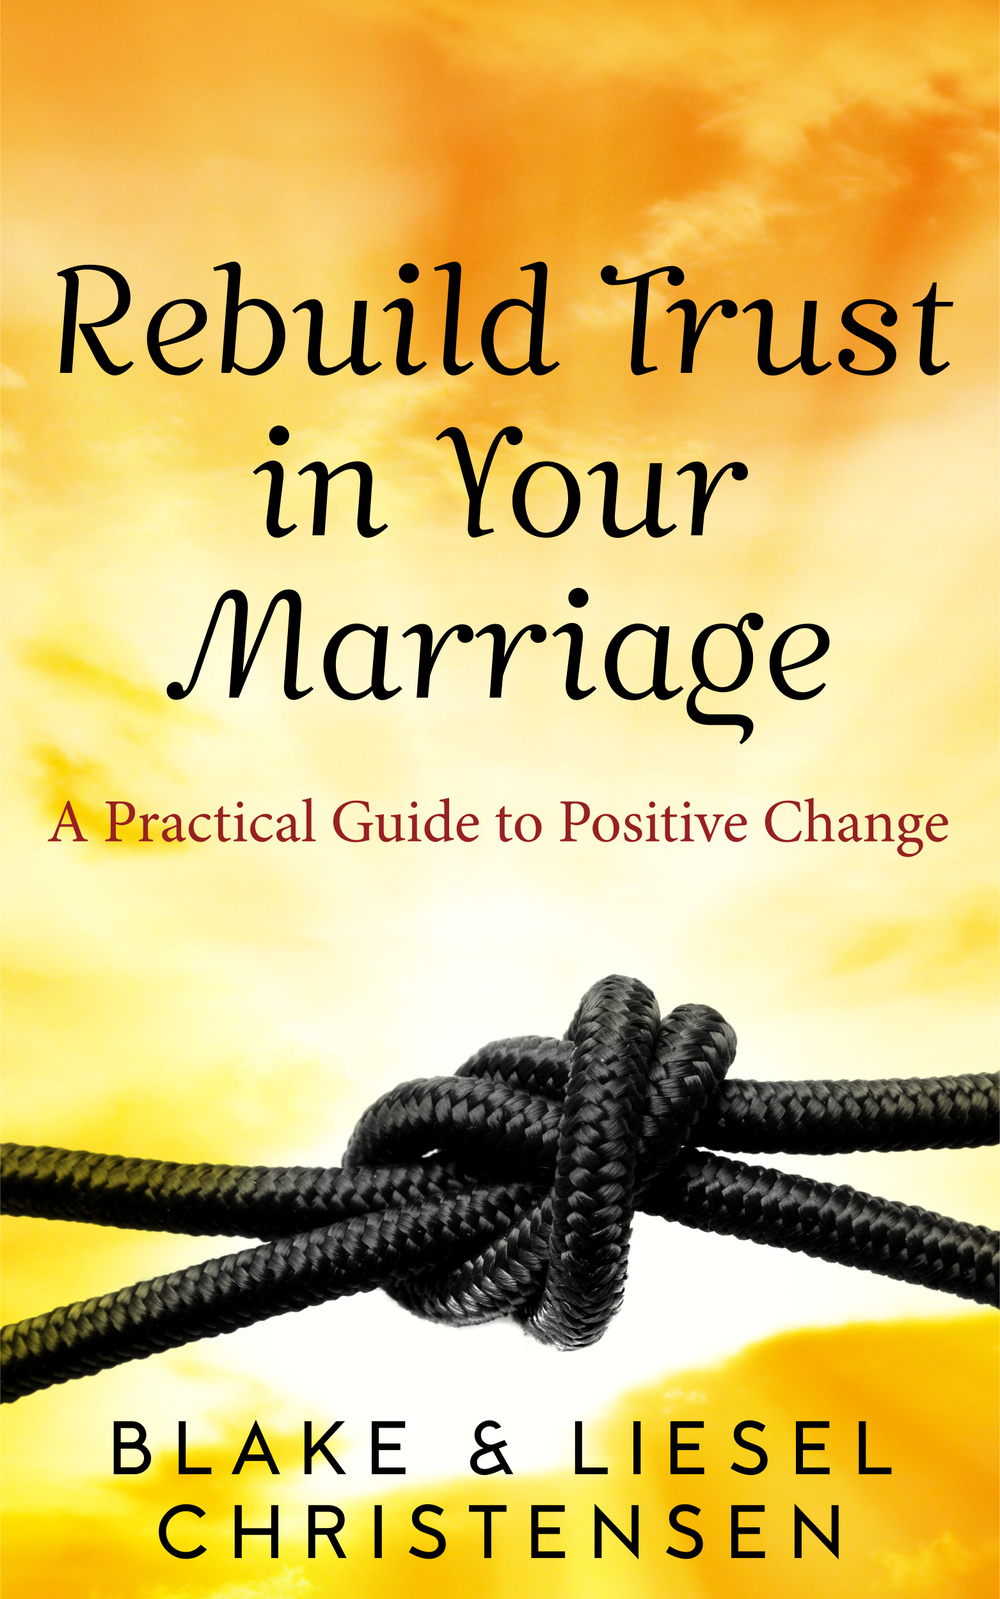 Couples CAN rebuild trust after a betrayal. Our new book has great tips and advice to show you how. Click here to check it out!